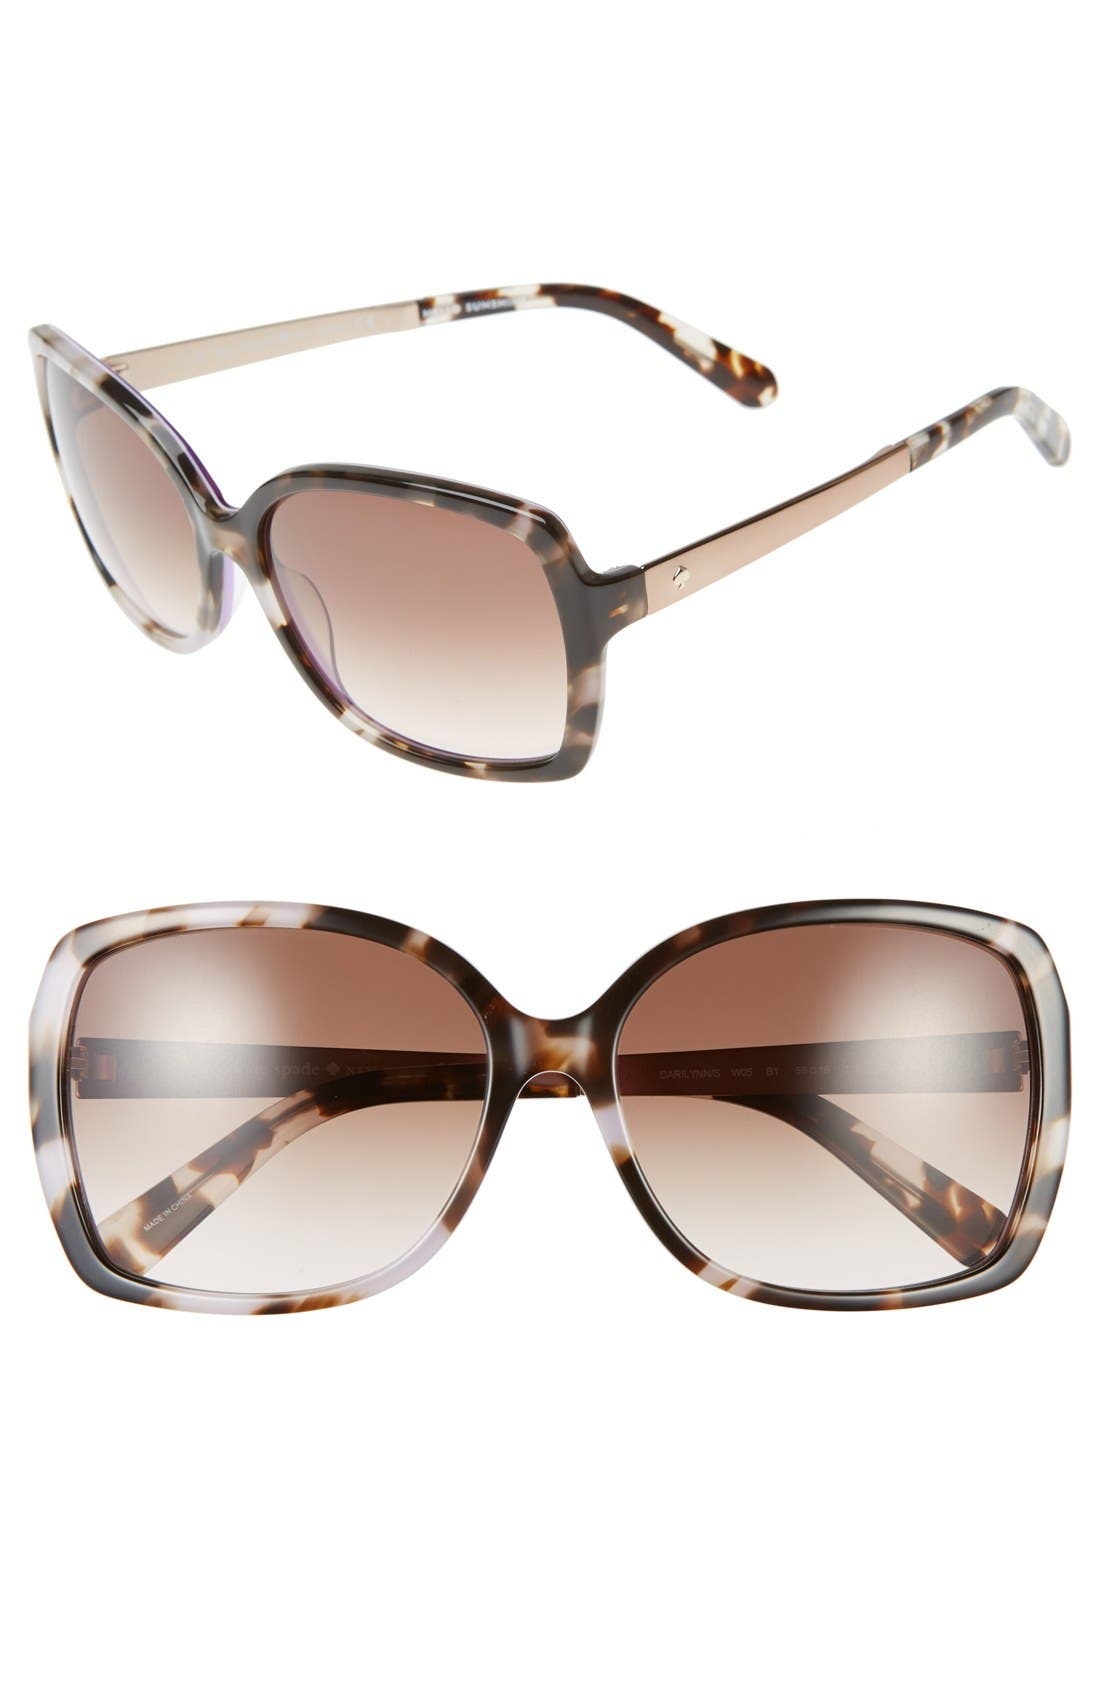 KATE SPADE NEW YORK darrilyn 58mm butterfly sunglasses